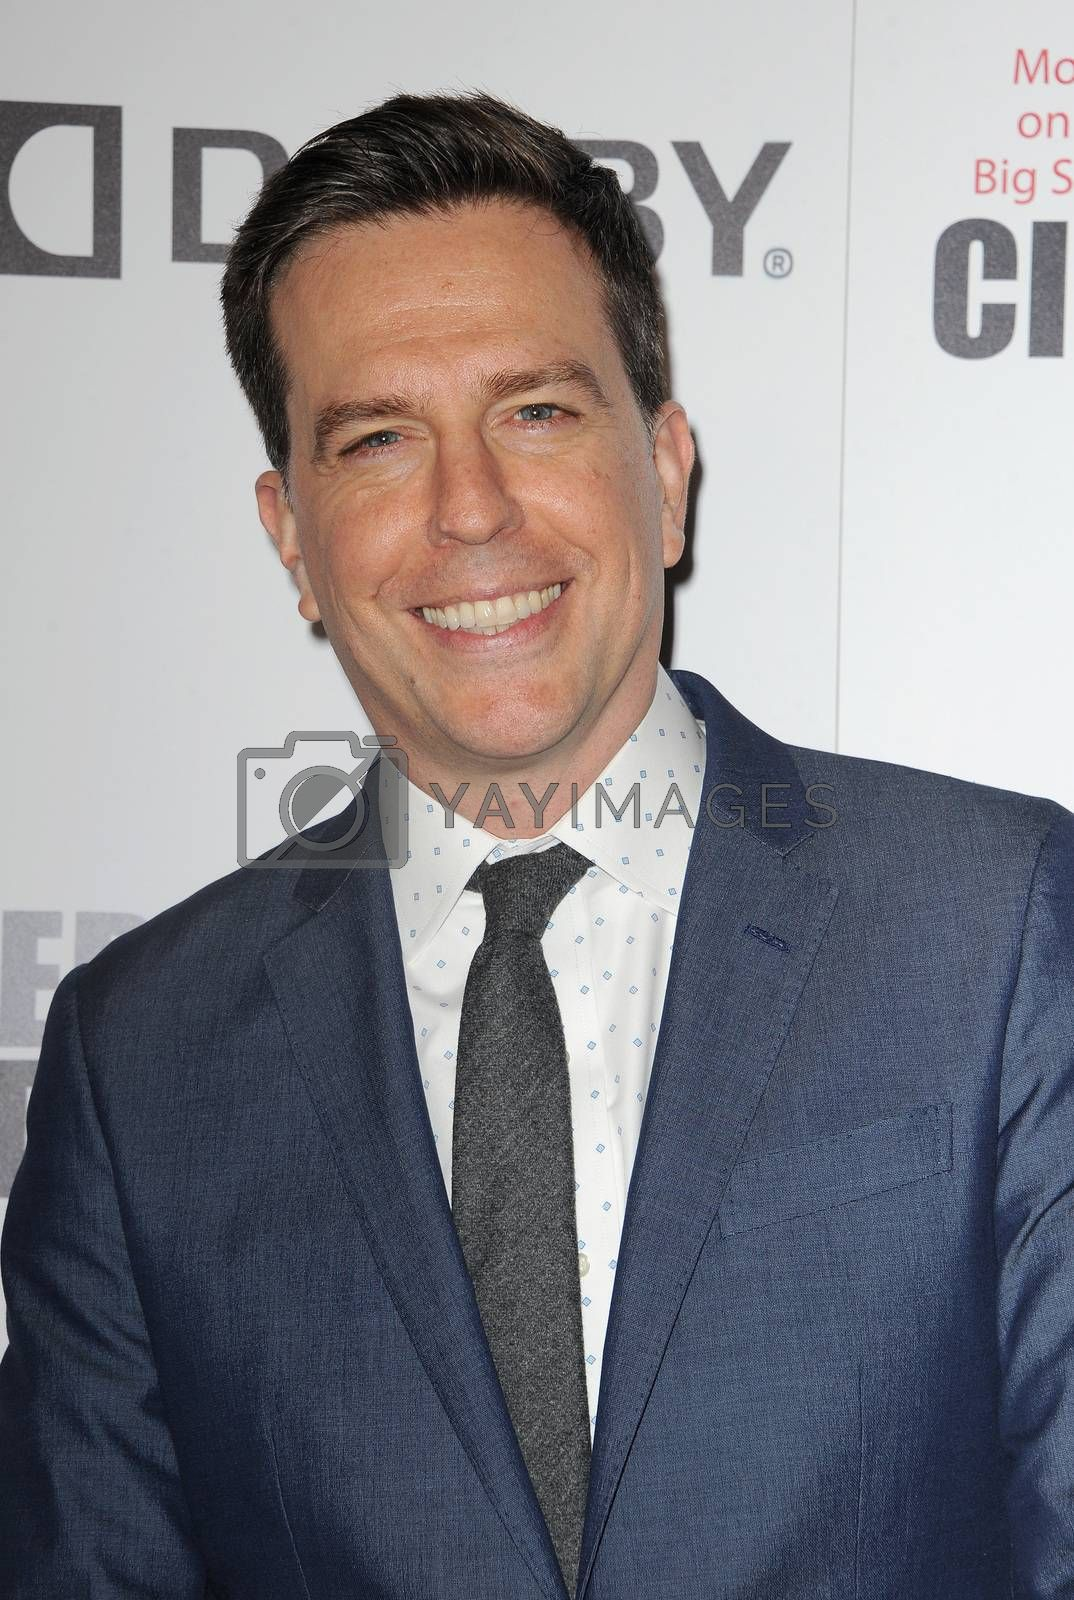 Ed Helms by Lumeimages